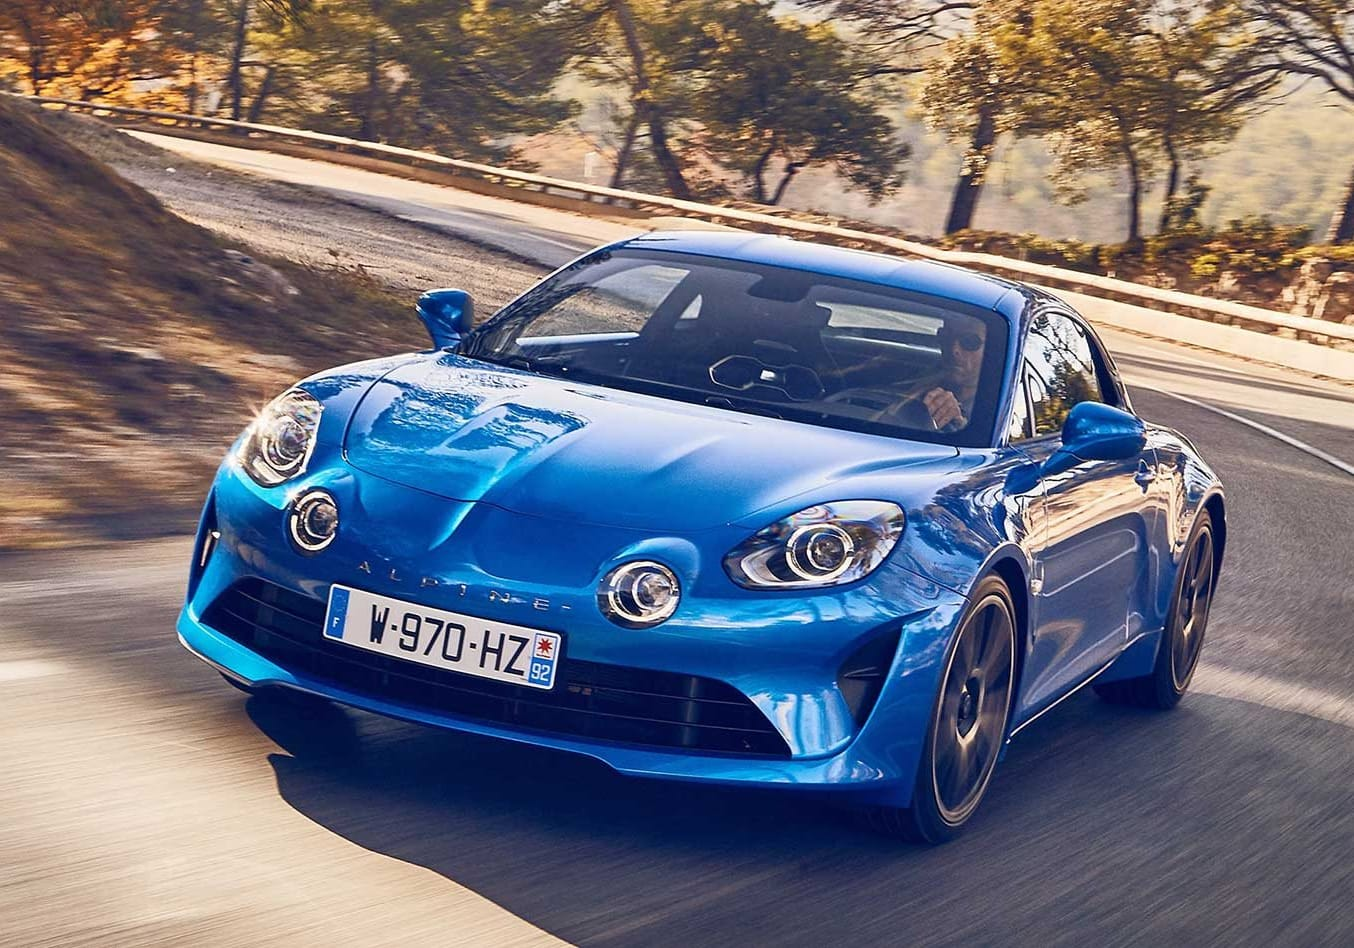 2018 Alpine A110 in numbers